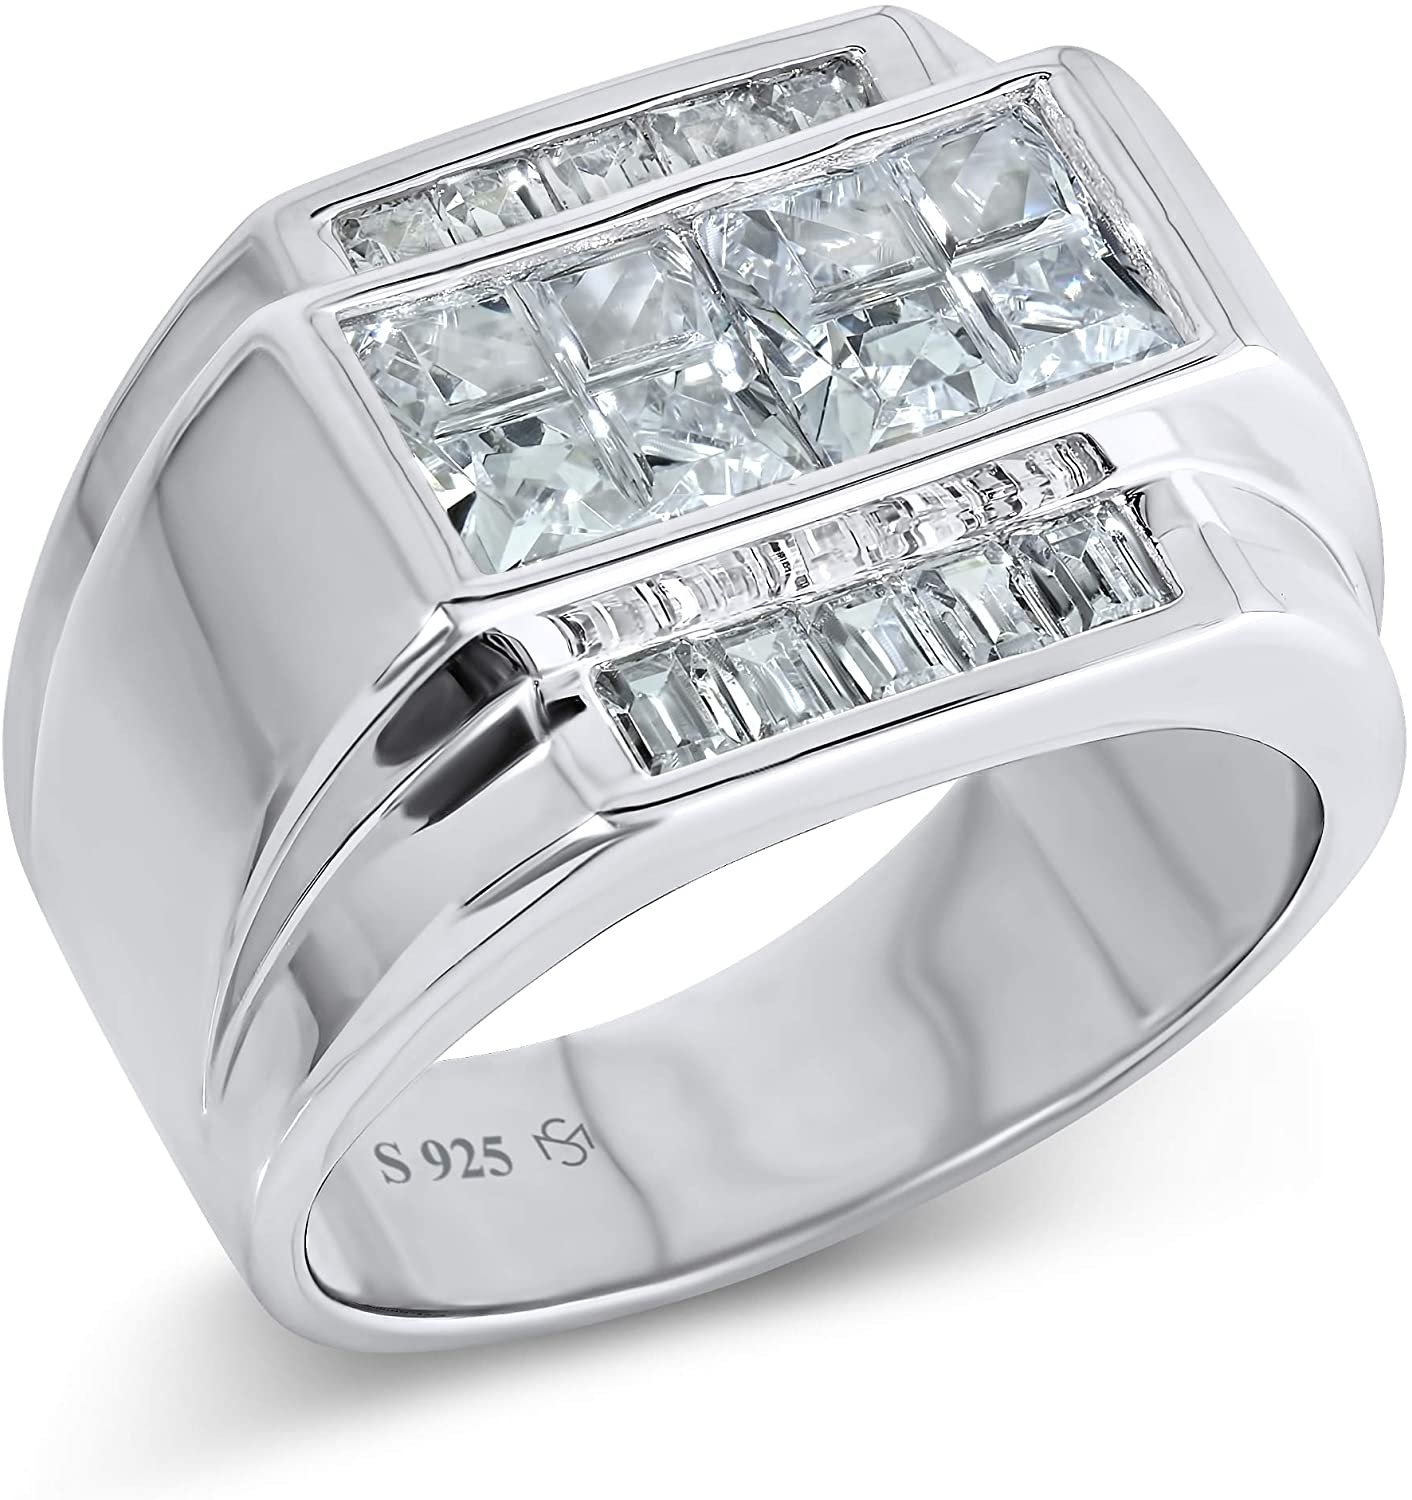 Mens Sterling Silver .925 Ring with White Invisible and Channel Set Cubic Zirconia (CZ) Stones, Platinum Plated. Flashy Eye Catching Ring. Elegant Sterling Silver Jewelry Encrusted with CZs For Men.